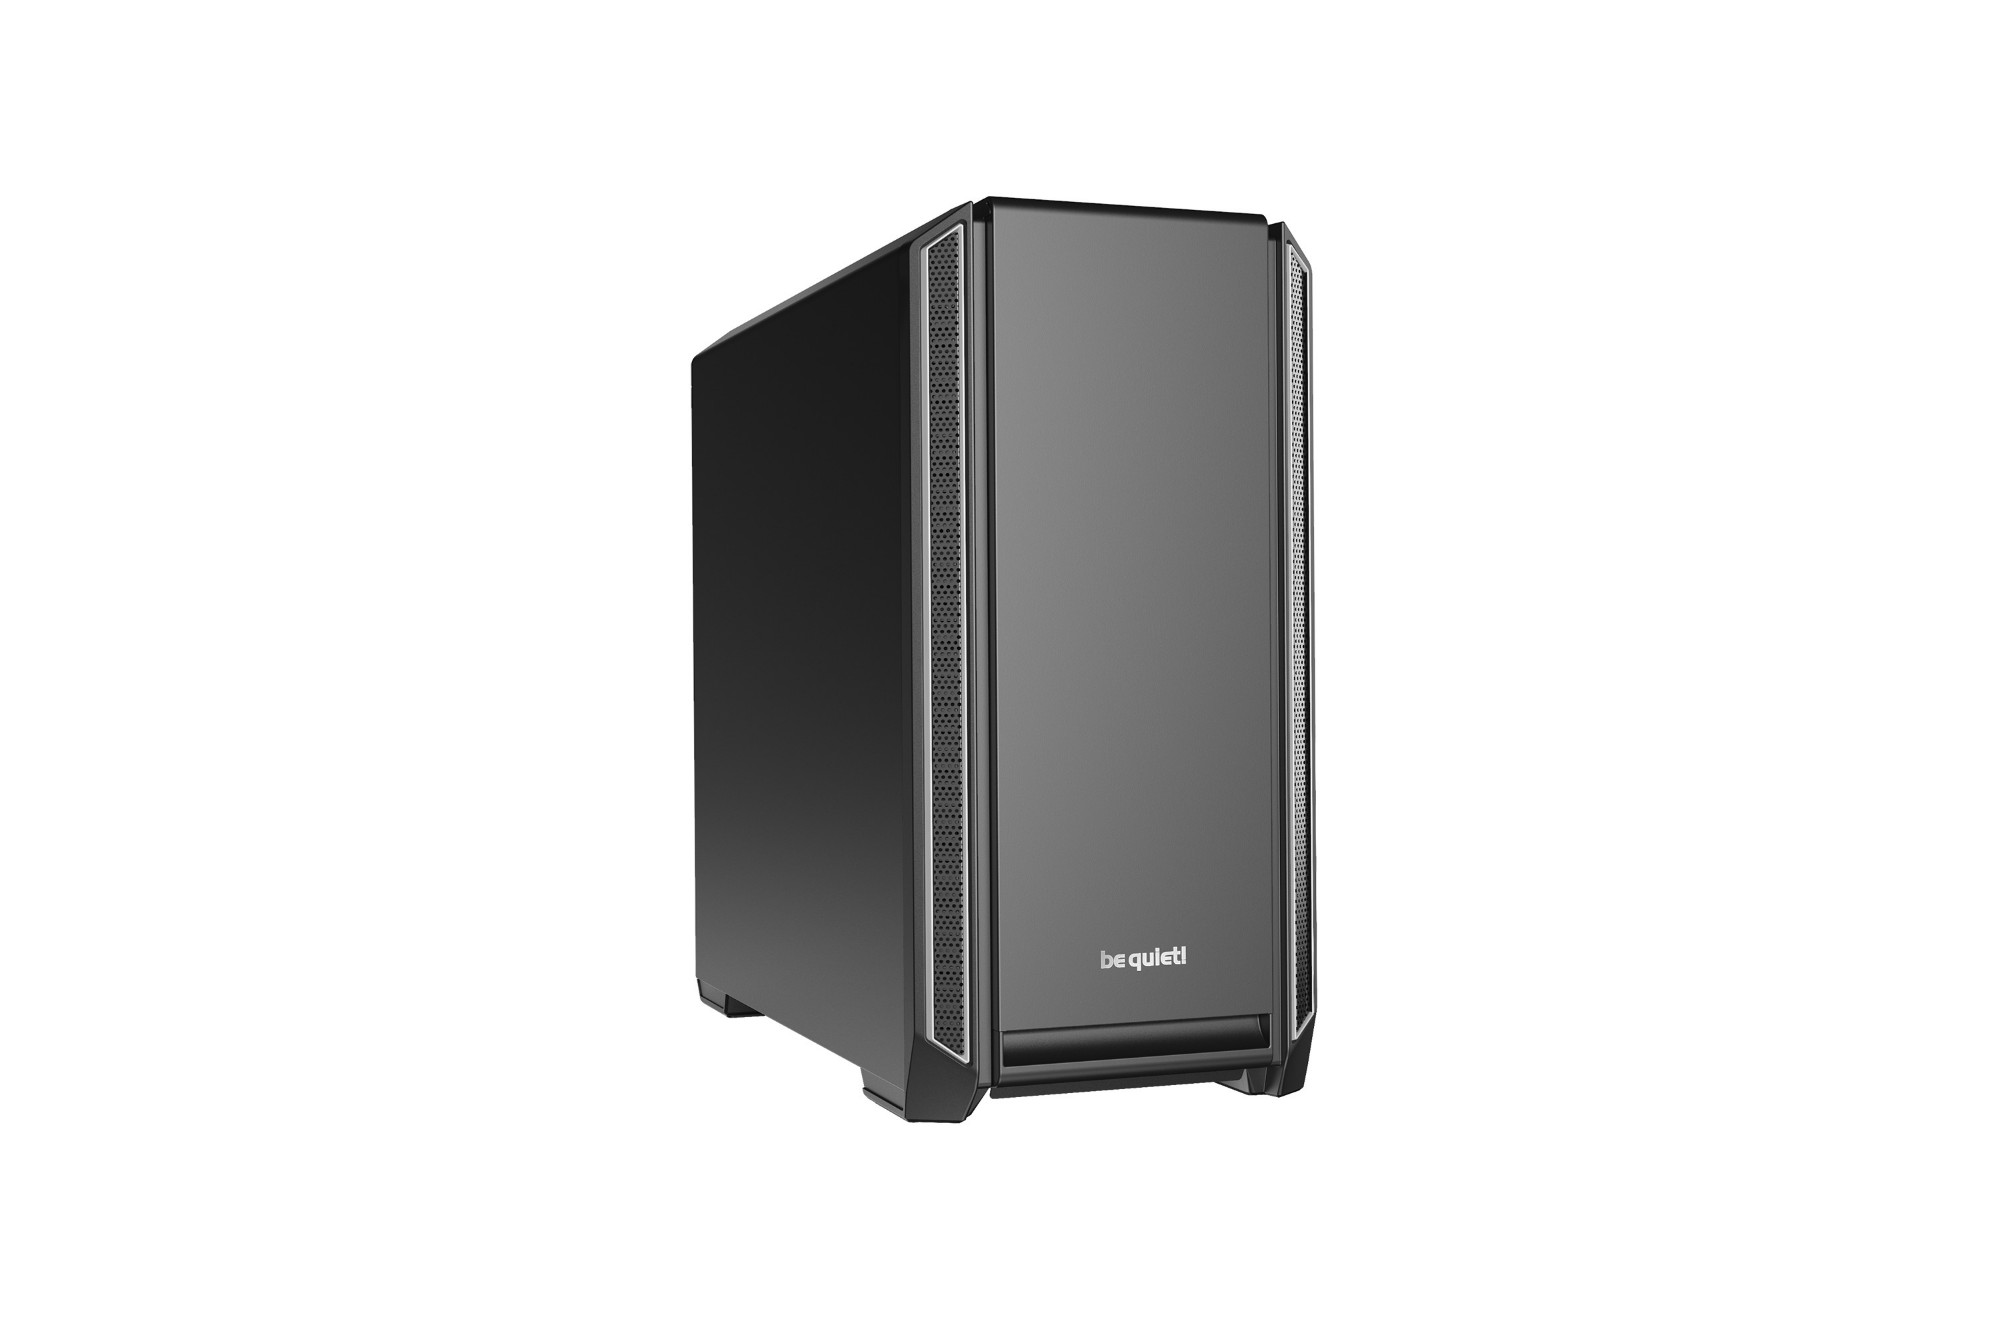 be quiet! Silent Base 601 Midi-Tower Black,Silver